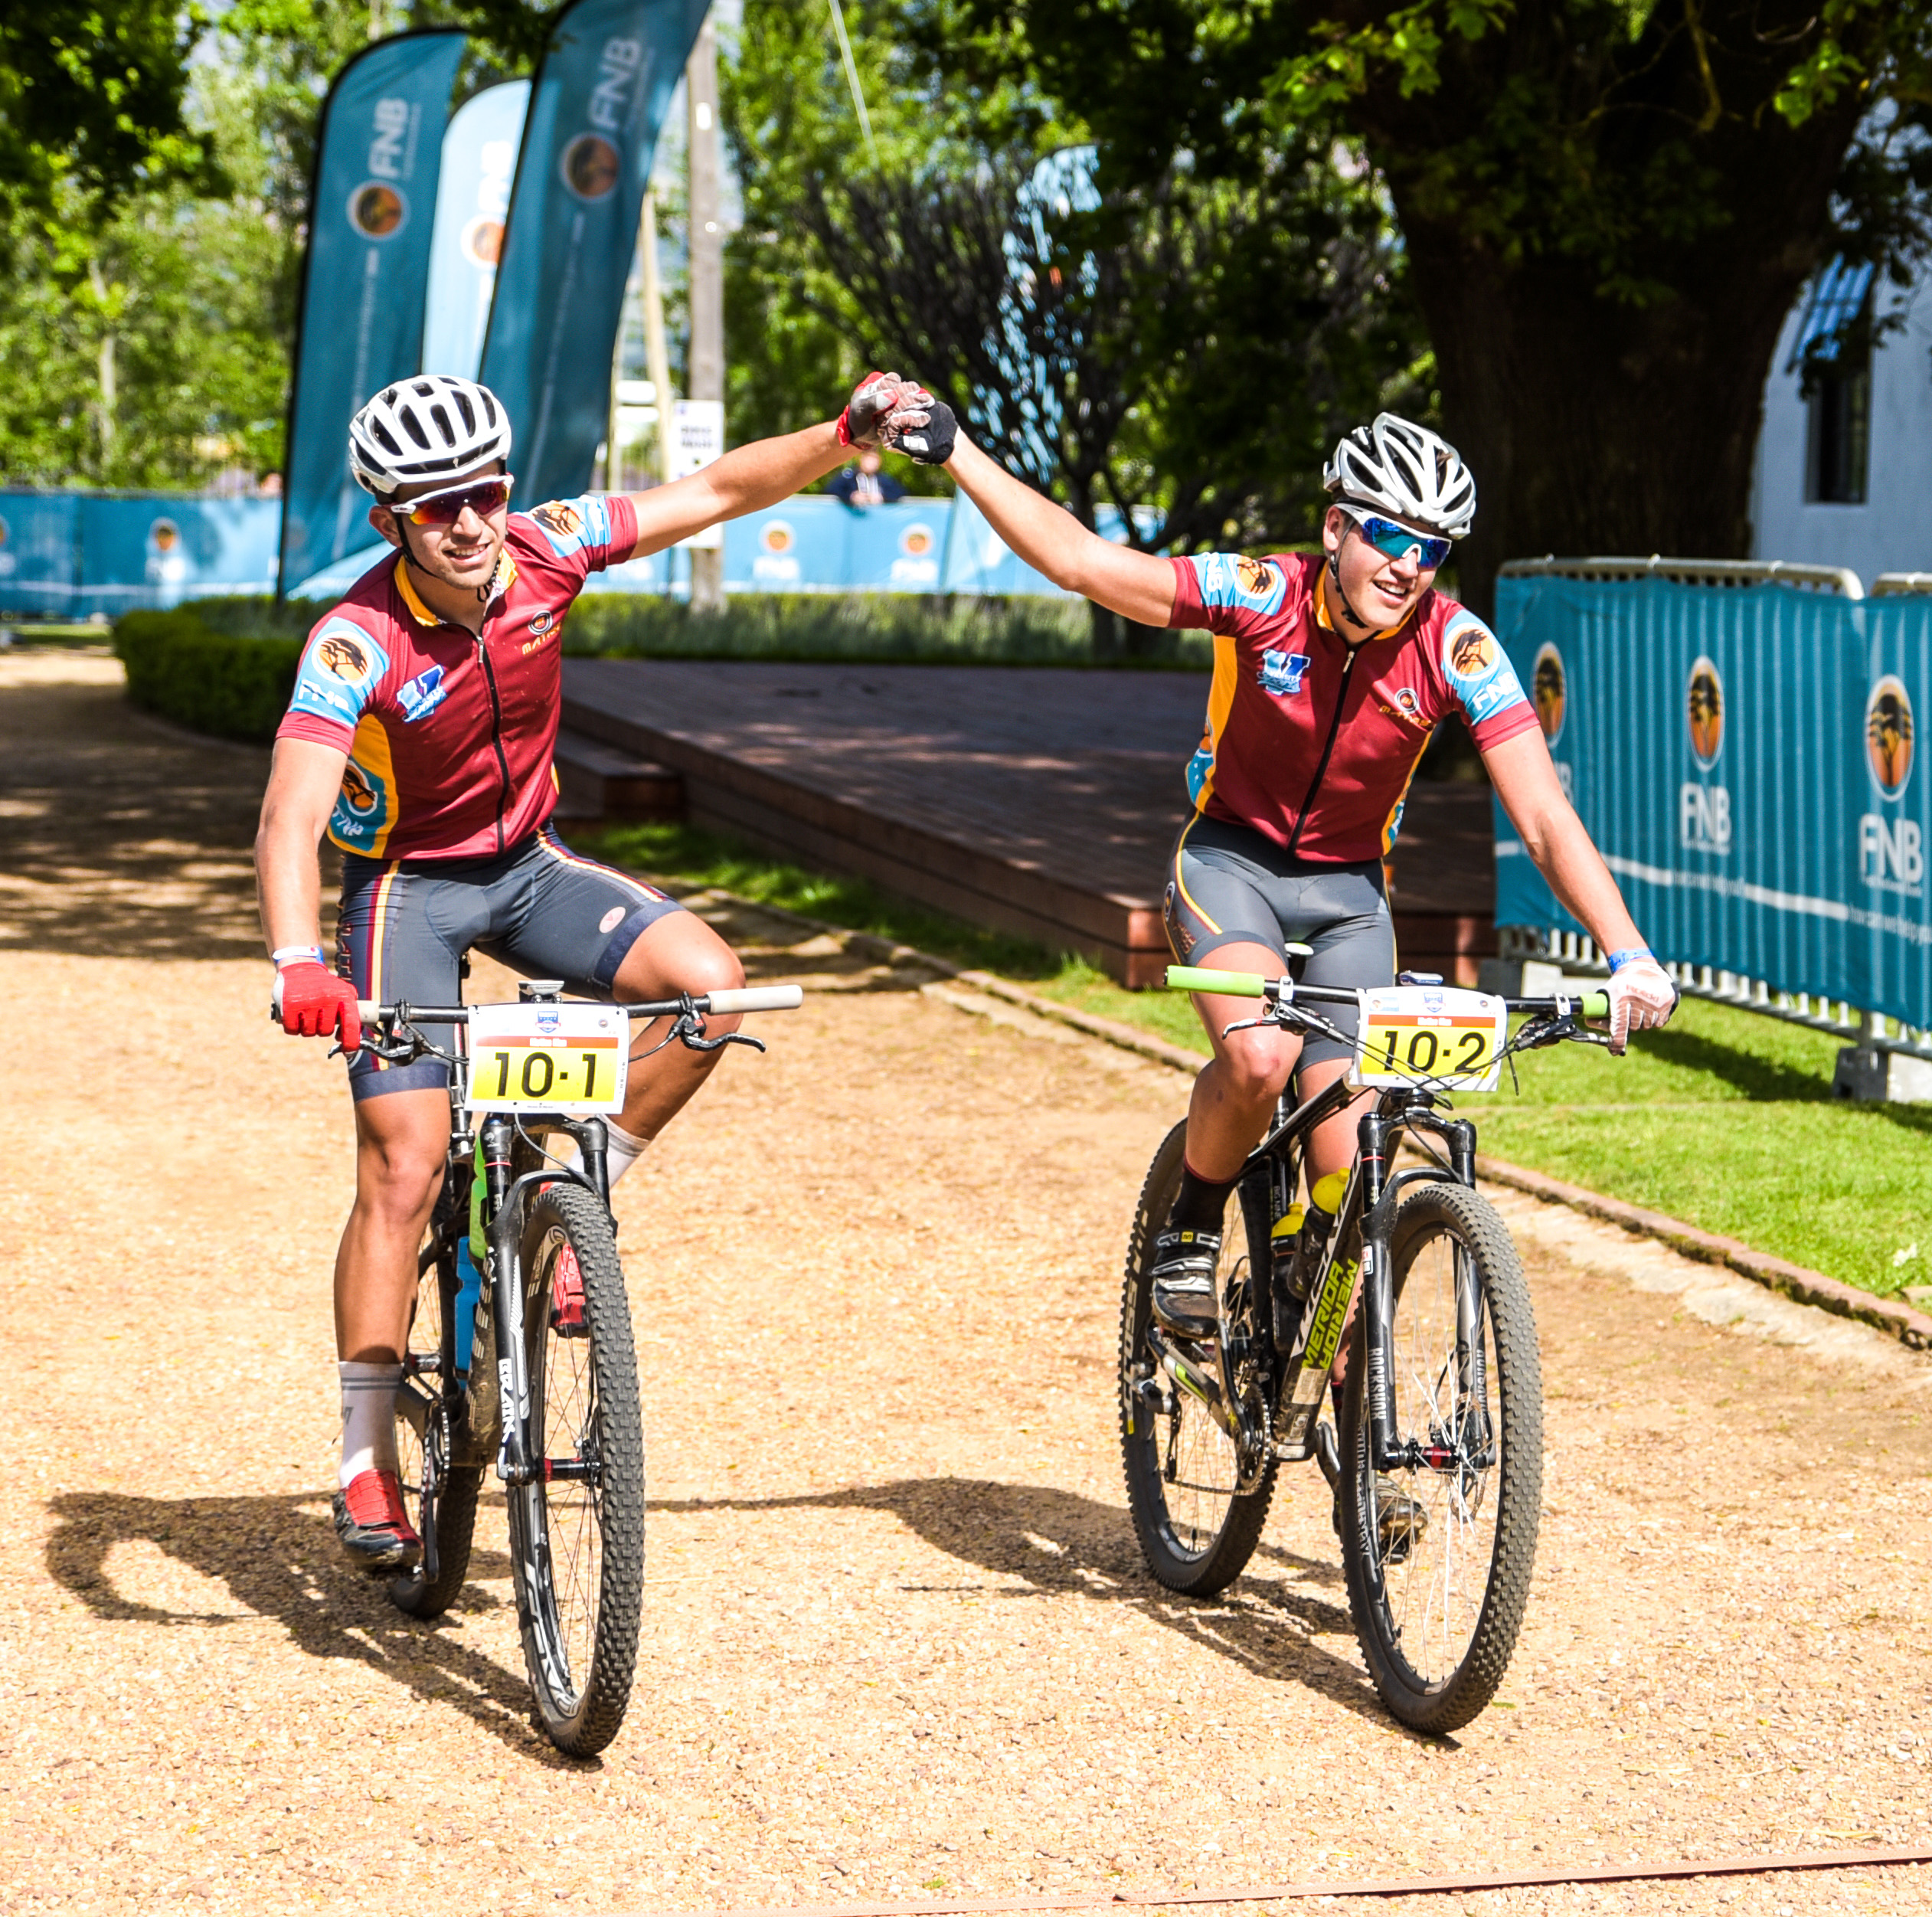 Maties' Varsity Sports MTB Challenge winners, CP van Wyk and Ian Lategan crossing the finishing line on day two of the Varsity Sports MTB Challenge. Please credit Robert Ward for this photo.